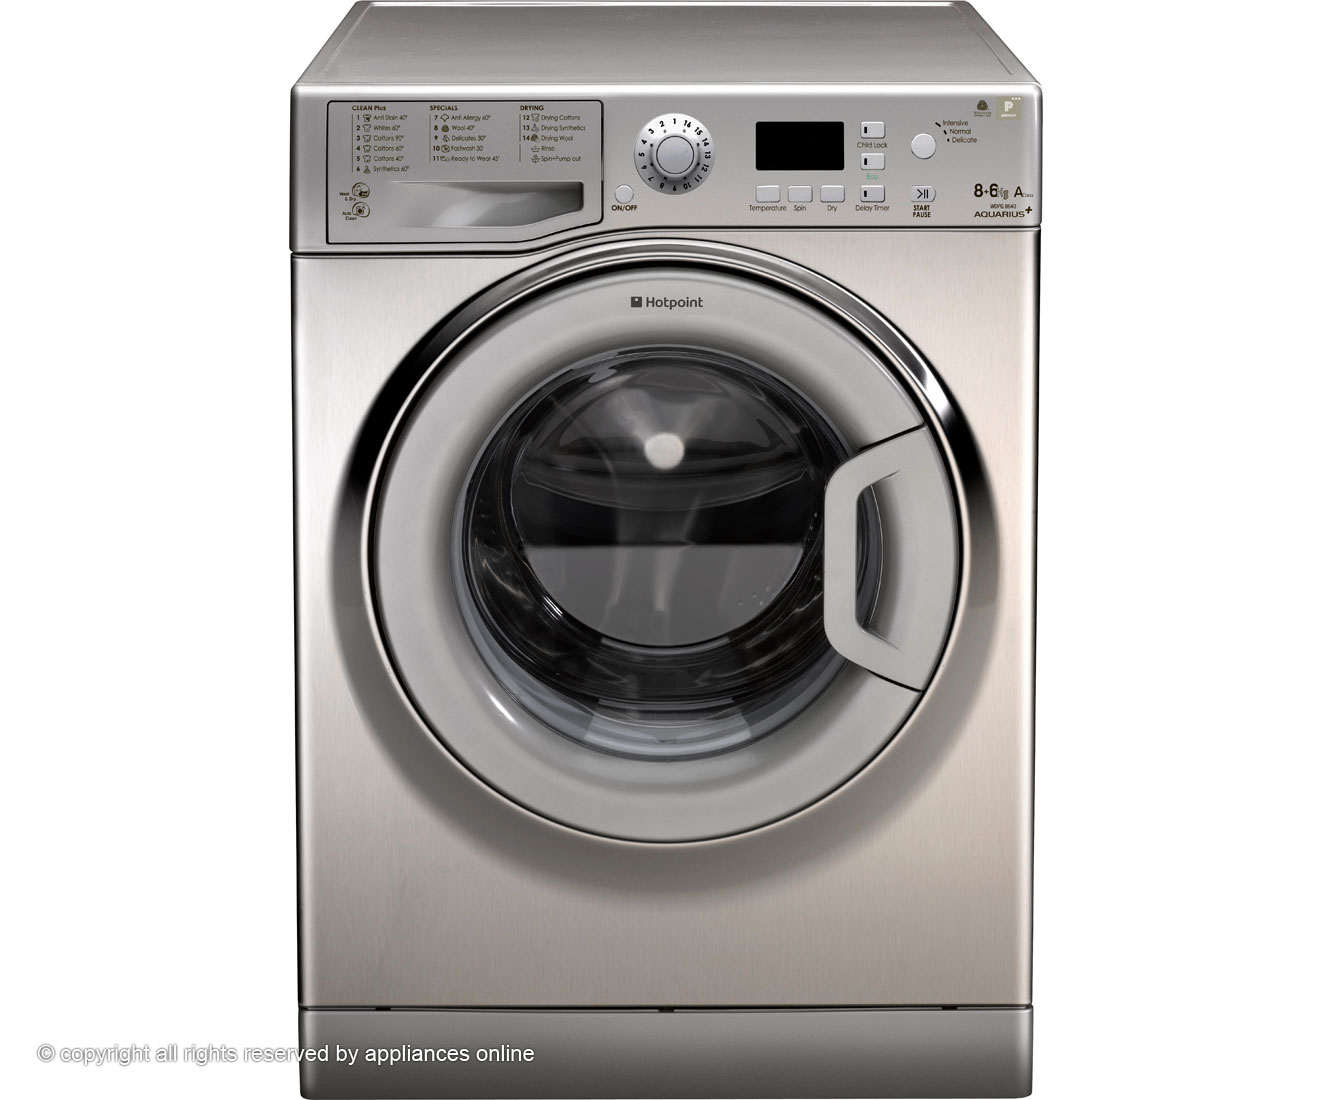 Hotpoint WDPG8640X 8Kg / 6Kg Washer Dryer with 1400 rpm - Inox